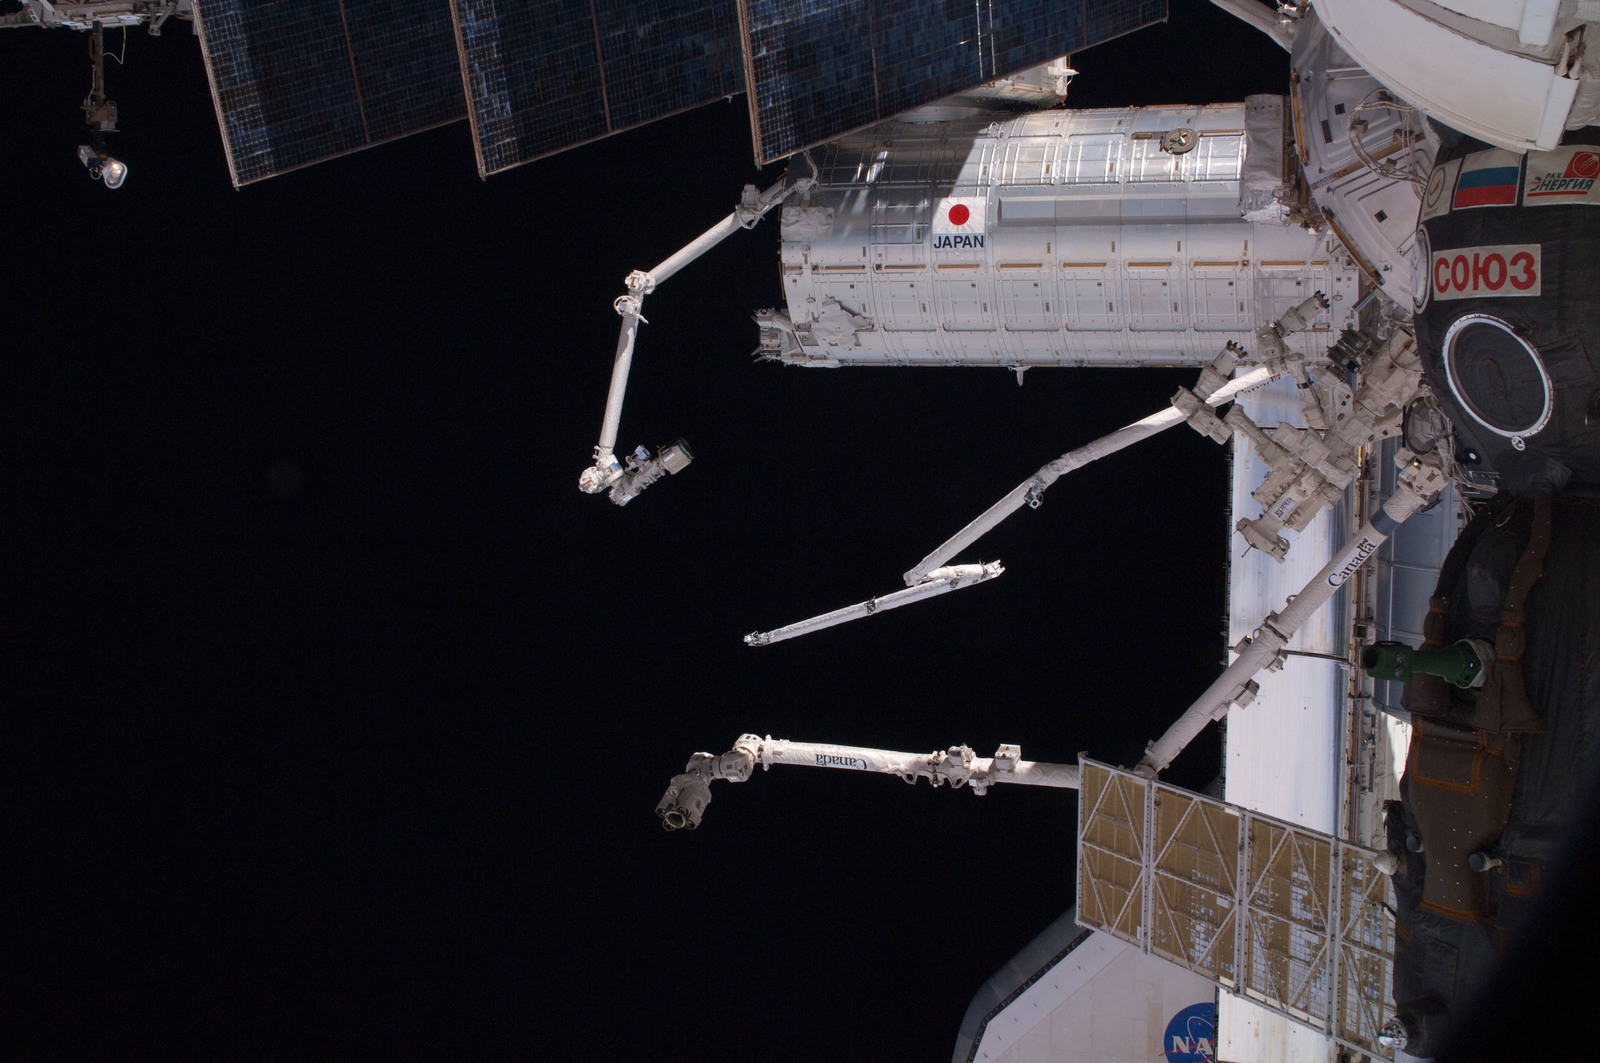 S126E020471 - STS-126 - View of Docked Soyuz, Endeavour, MSS and SRMS/OBSS